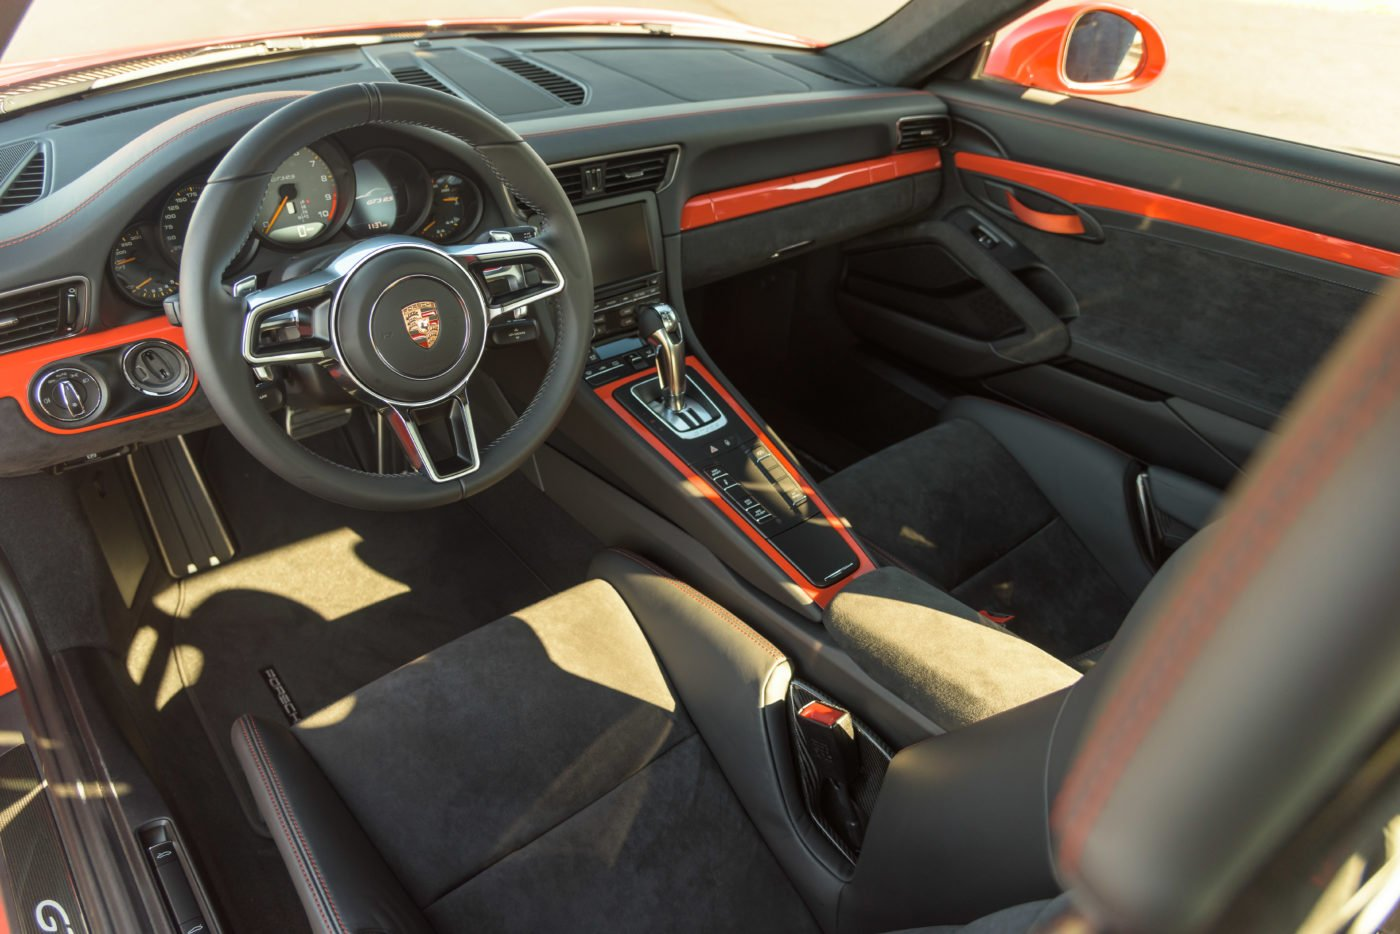 Porsche 911 GT3 RS specs include a 7-speed PDK transmission